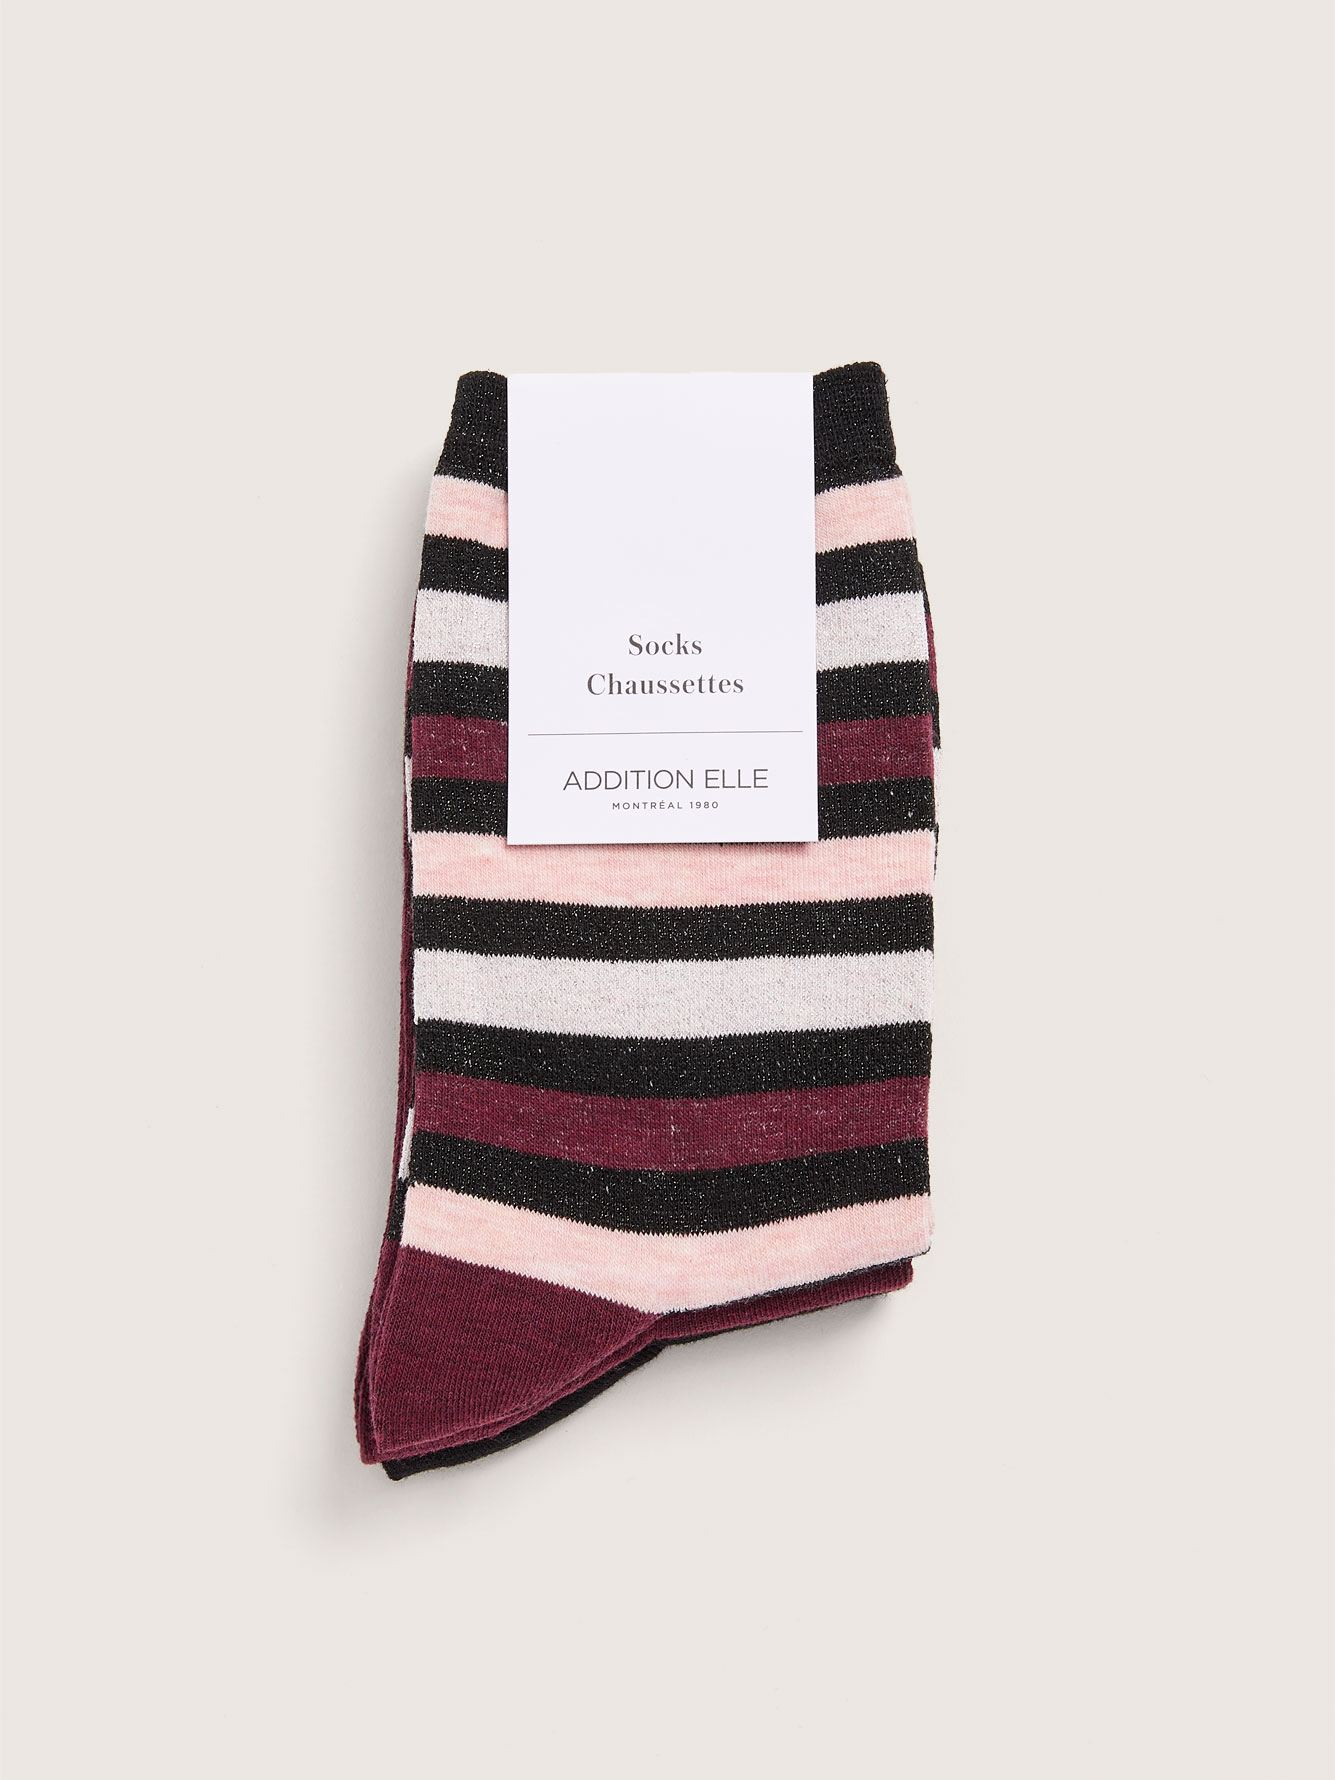 Wide Lurex Striped Socks, Pack of 3 - Addition Elle